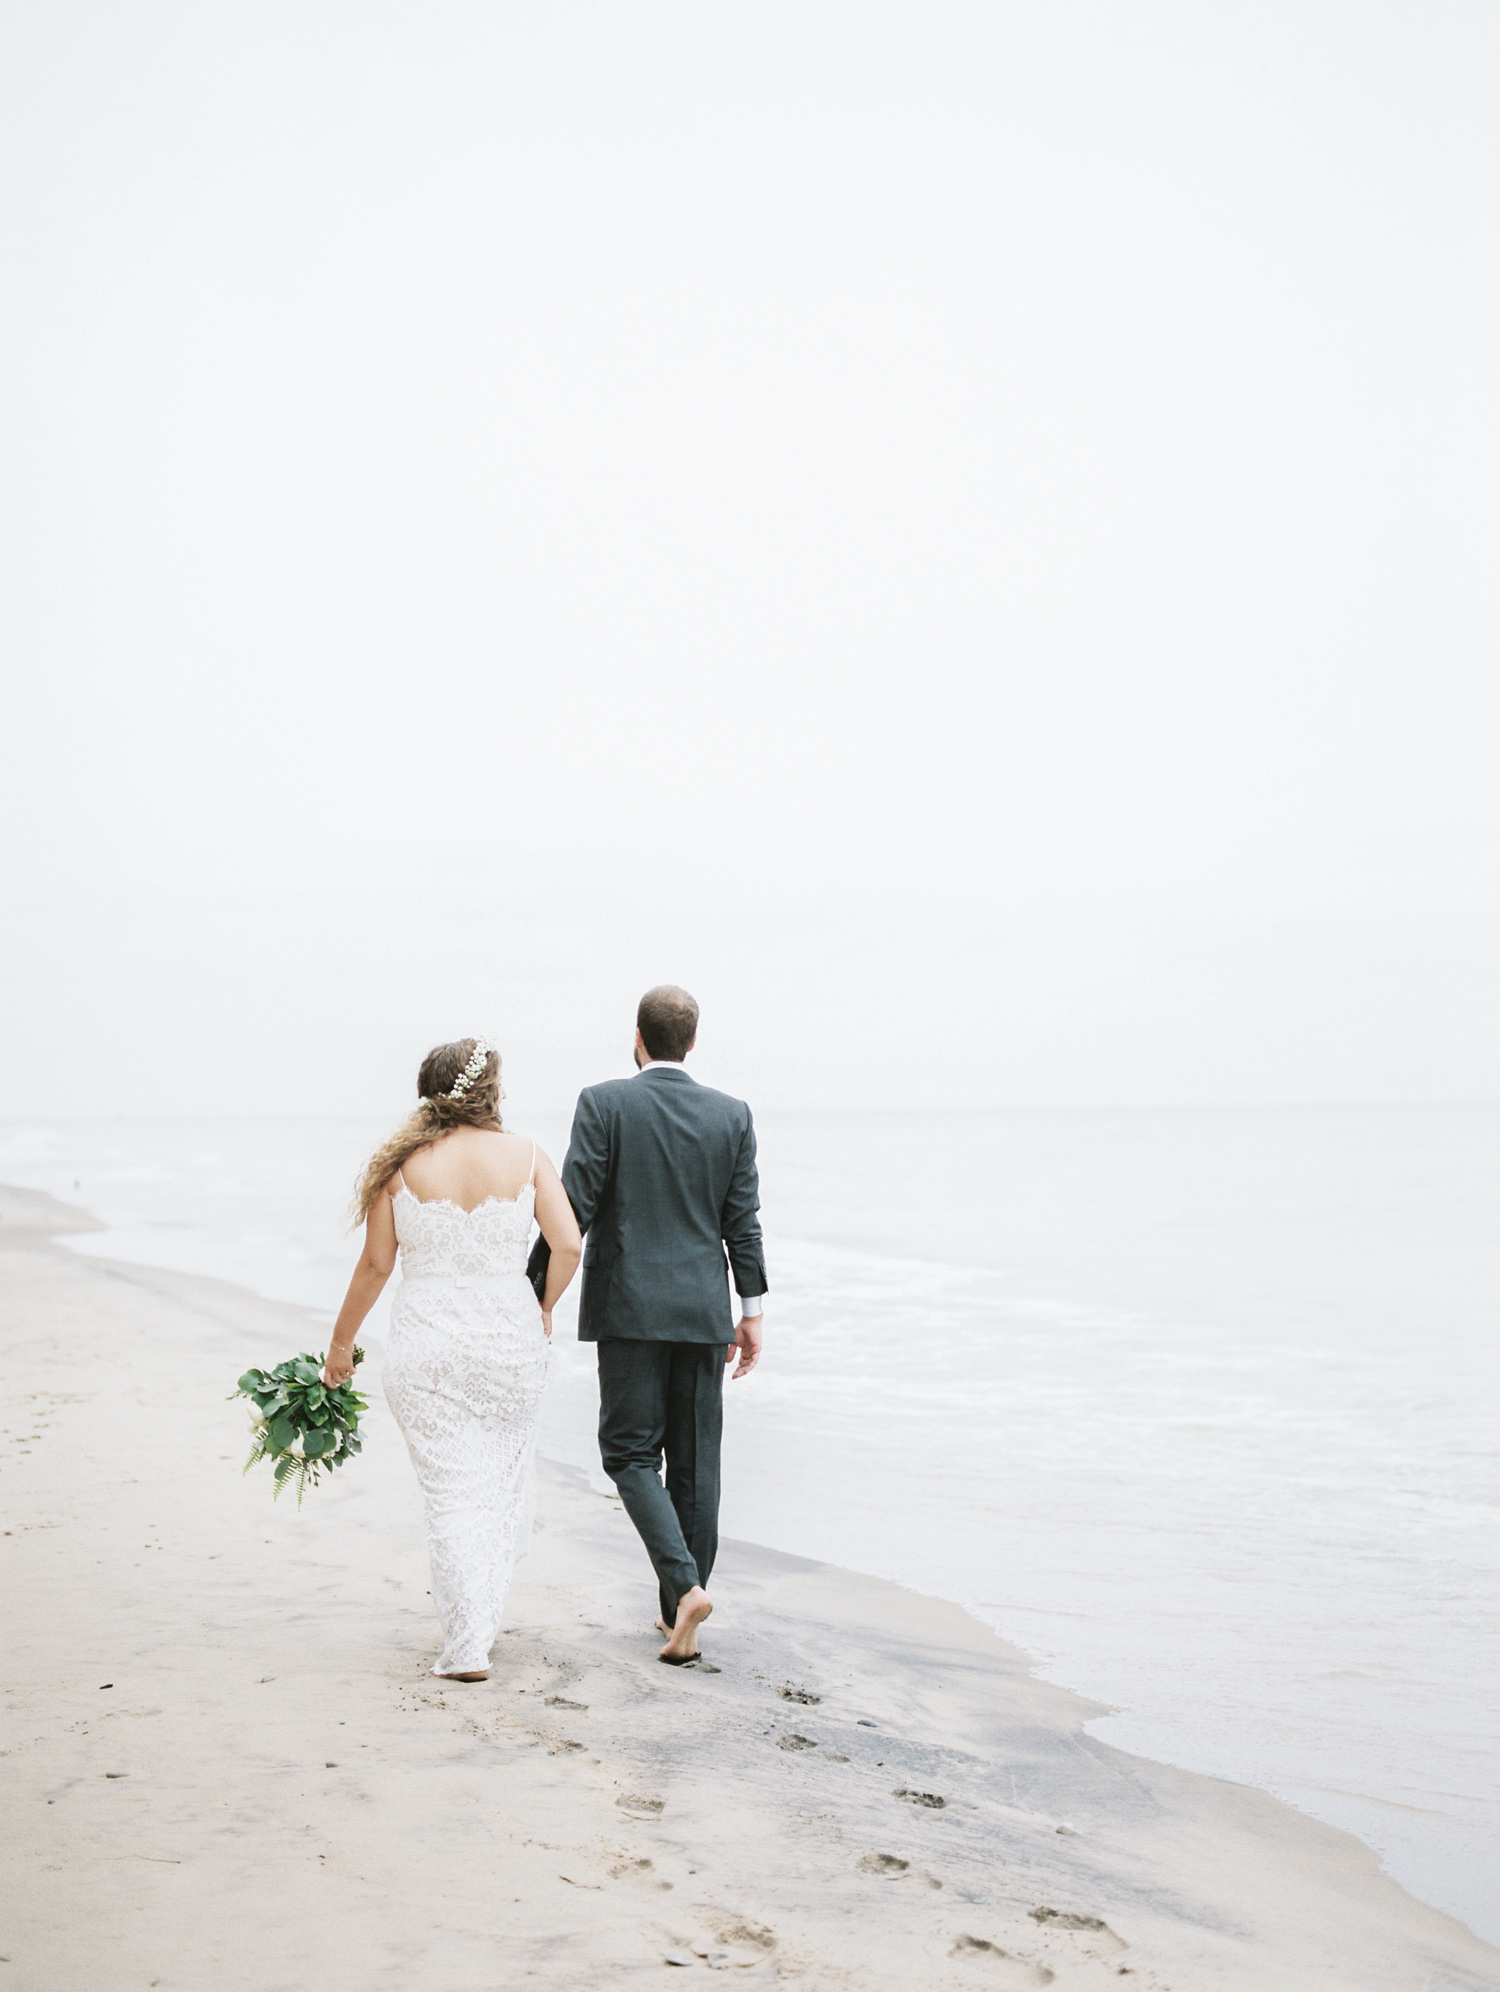 A bride and groom walk together down a Lake Michigan beach just after their small, intimate September wedding in west Michigan